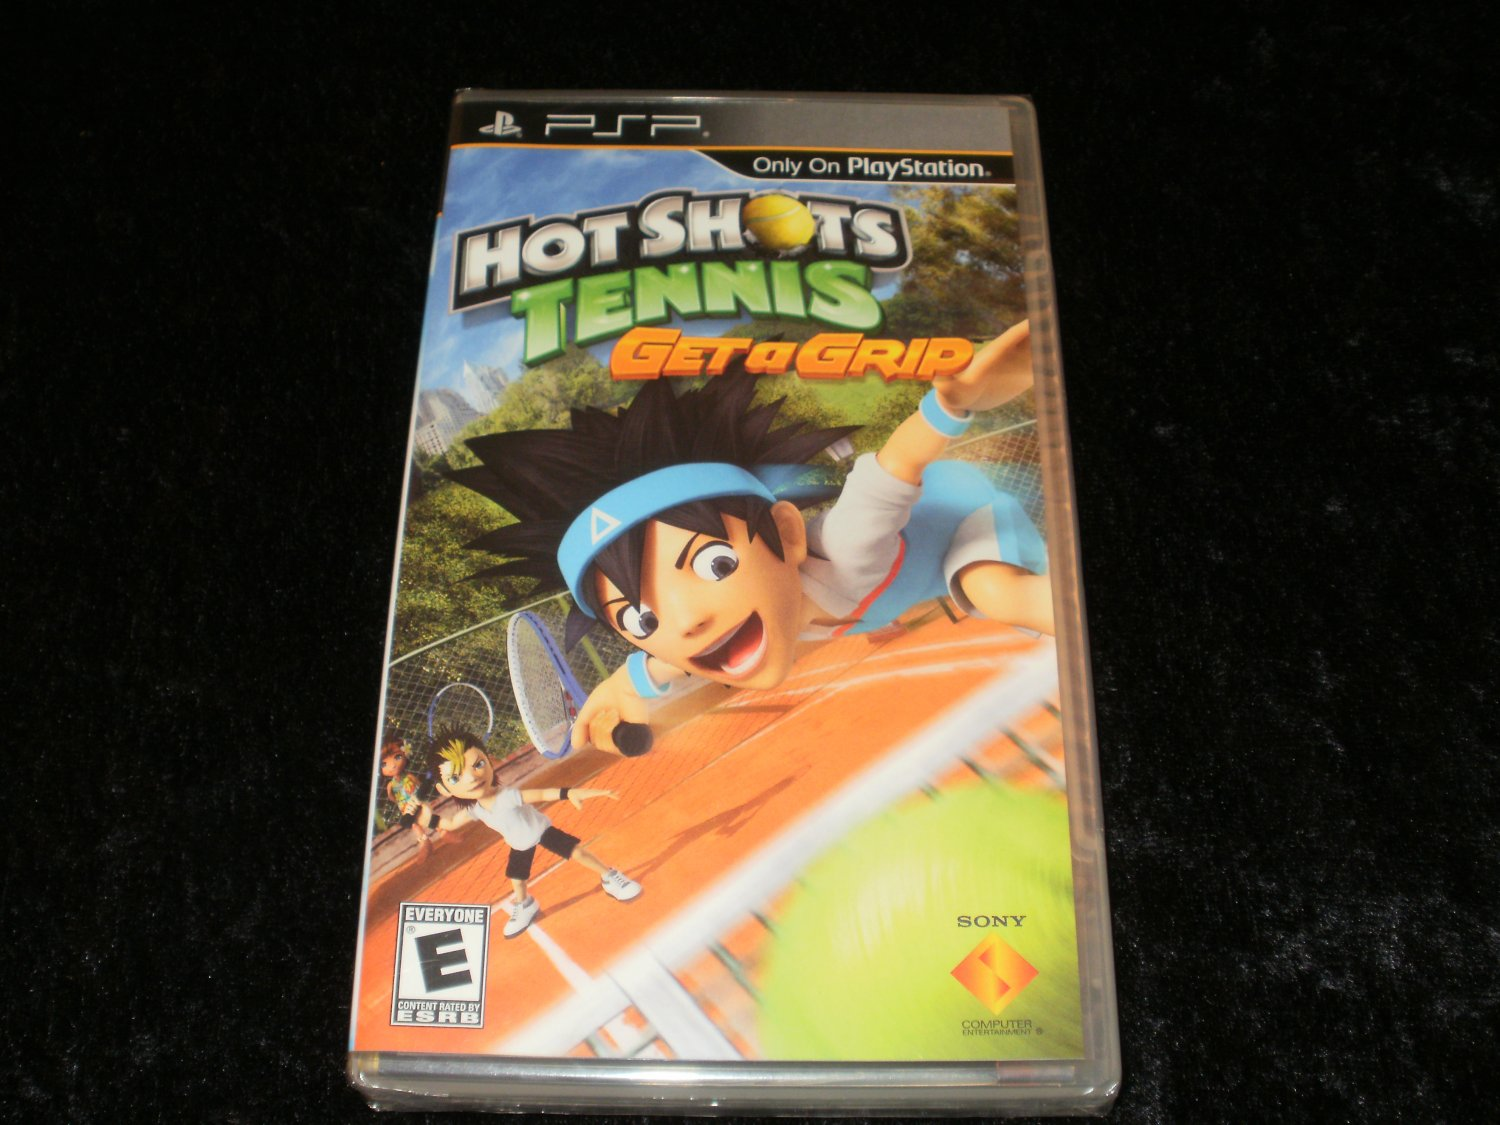 Hot Shots Tennis Get a Grip - Sony PSP - Brand New Factory Sealed